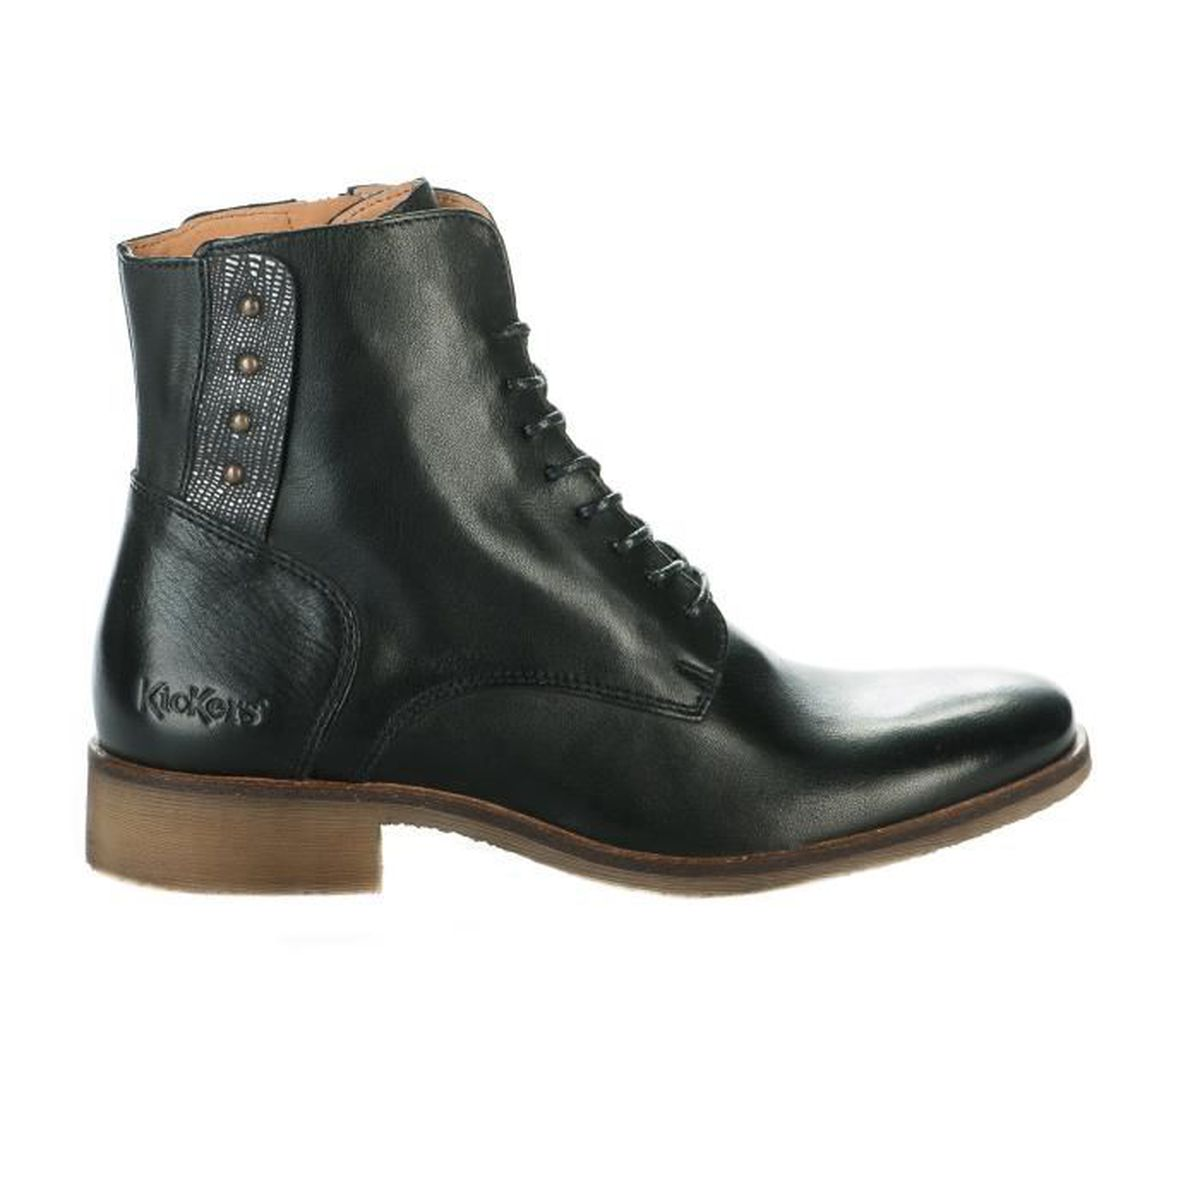 bottines / low boots life natur femme kickers 512020 noir - achat